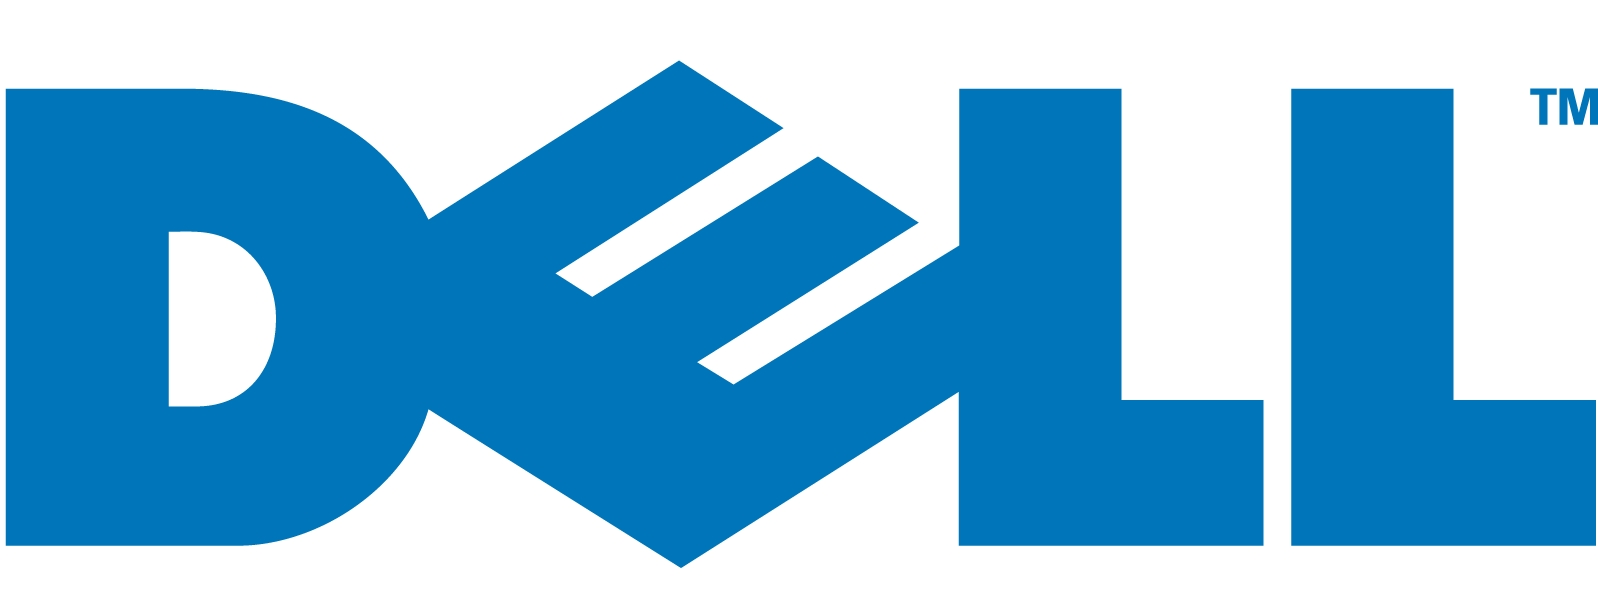 dell-logo-long.jpg